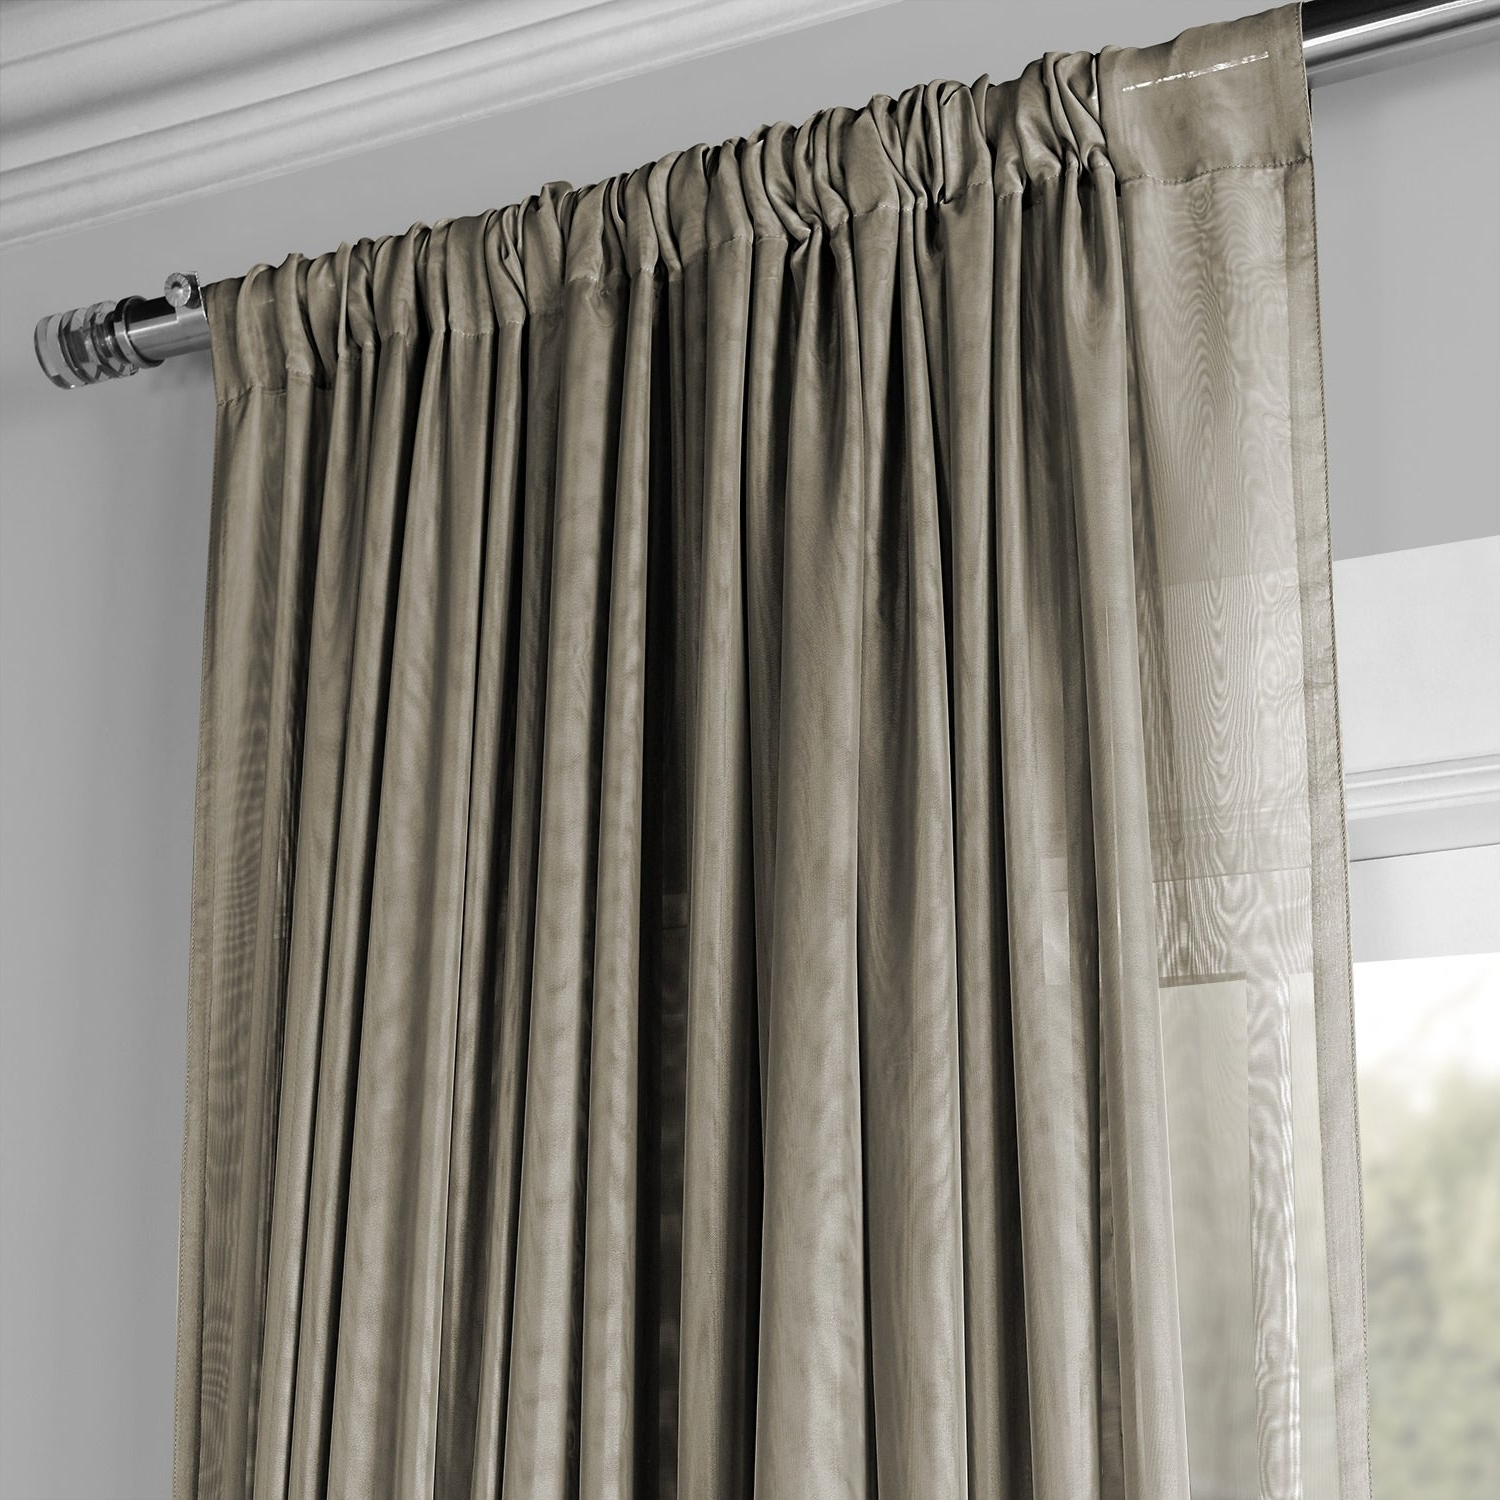 Signature Extrawide Double Layer Sheer Curtain Panels Intended For 2020 Exclusive Fabrics Signature Extrawide Double Layer Sheer Curtain Panel (View 7 of 20)